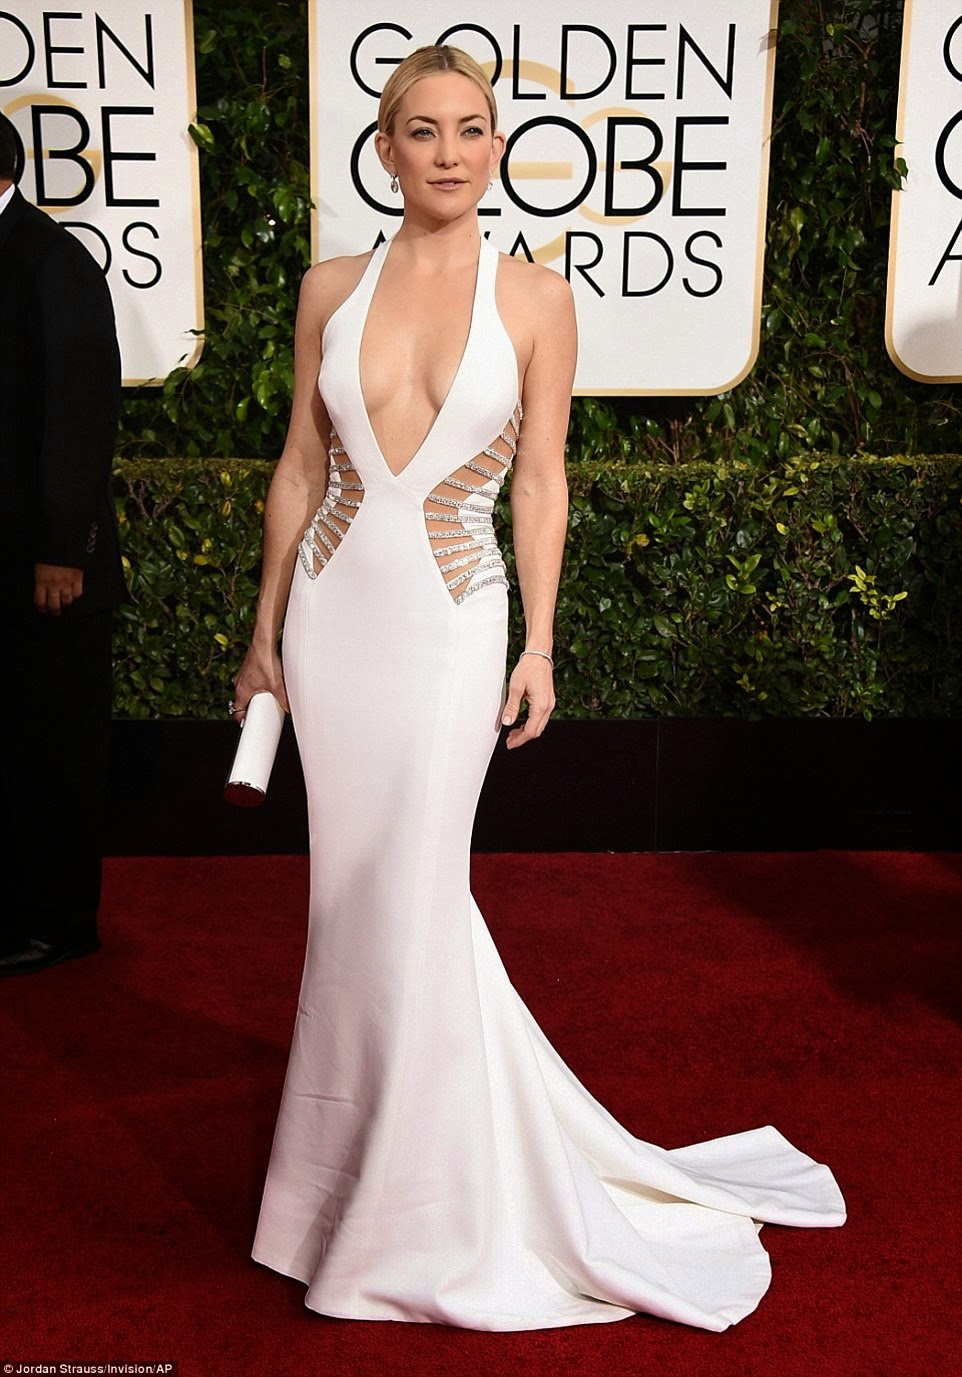 red carpet, luxe, Golden Globes Awards, dress, Esencia Tendy, look, Asesoria De Imagen y Protocolo, Protocolo, Personal Shopper, Kate Hudson, jewels,